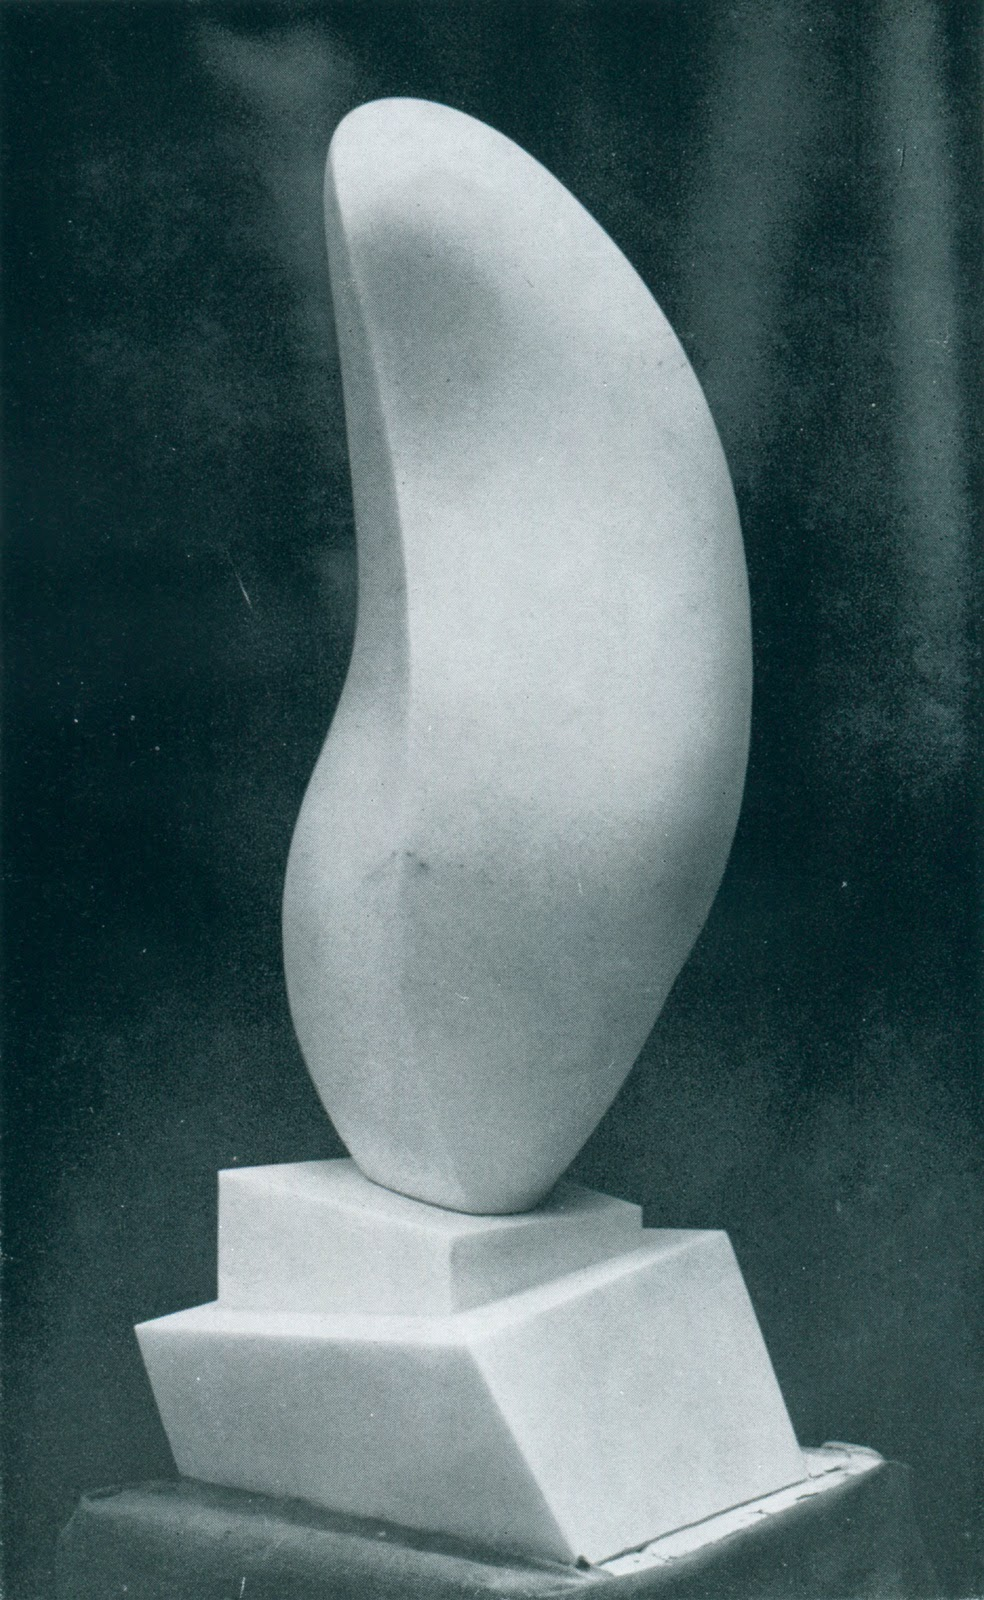 12. Cristal et feuille (leaf on crystal), 1954